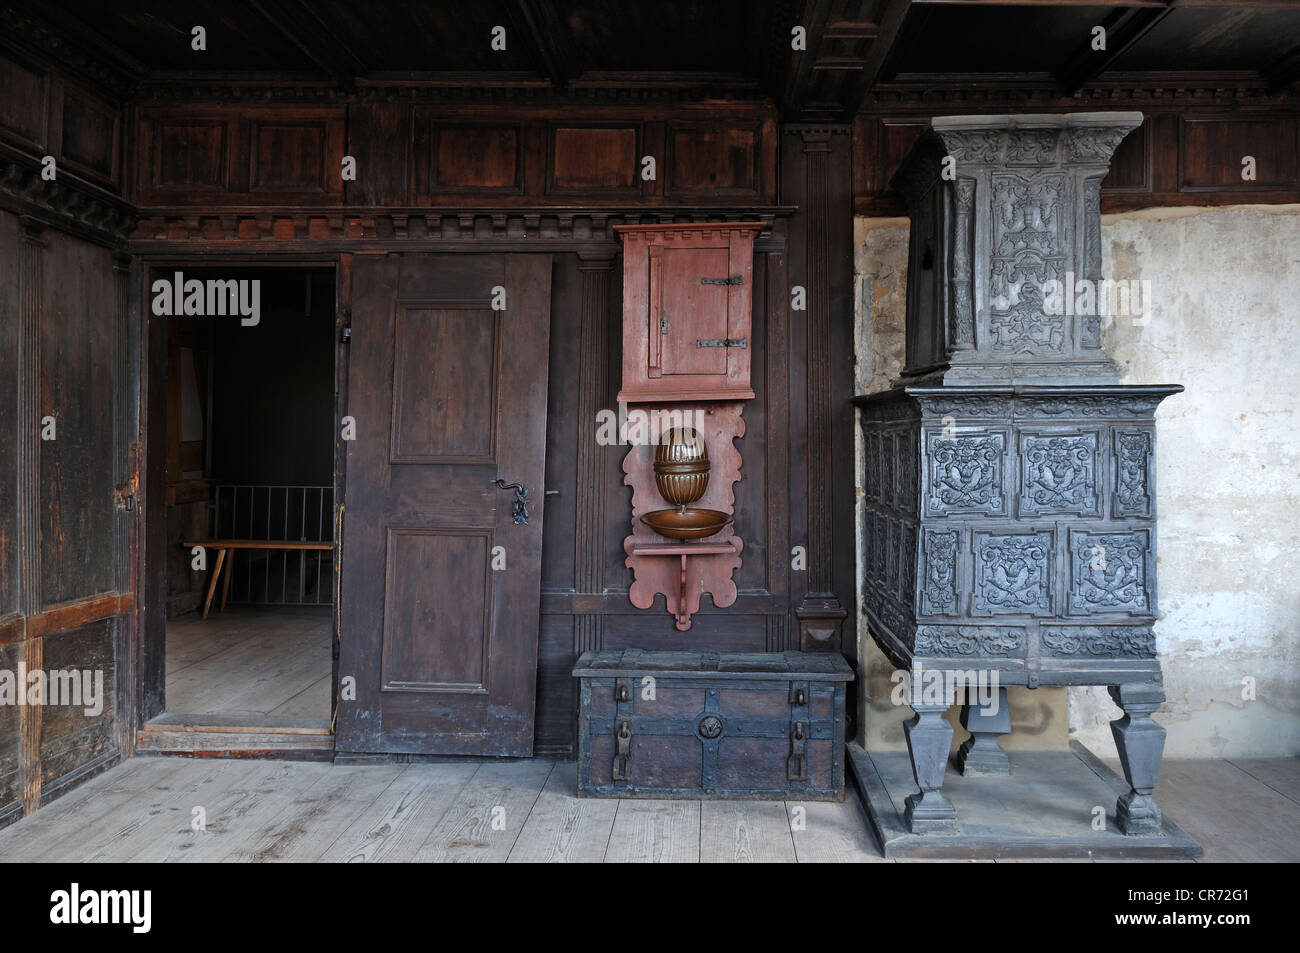 Upper parlour with stove in Schultheissenhof from Obernbreit, 1554, Franconian open-air museum, Eisweiherweg 1, - Stock Image